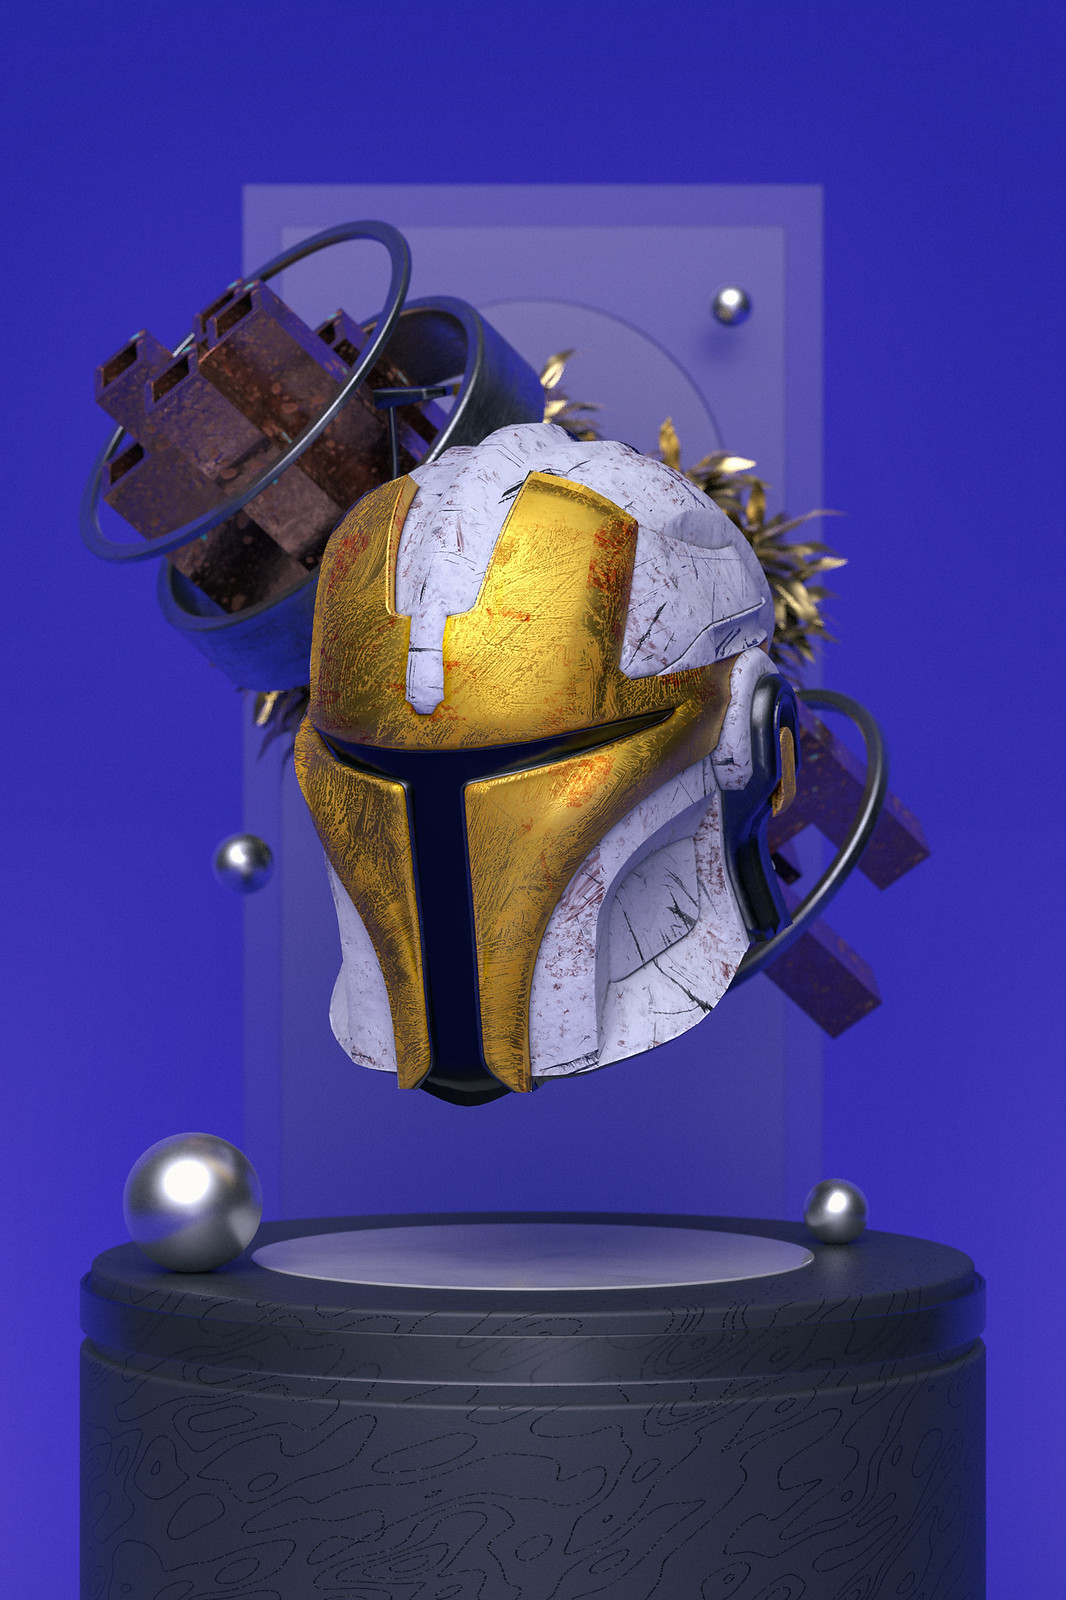 3D Rendered image in Cinema4D showing a Mandalorian Helmet (from Star Wars) floating above a tube. It's white with gold accents. In the background metal tubes and golden plants float behind the helmet.